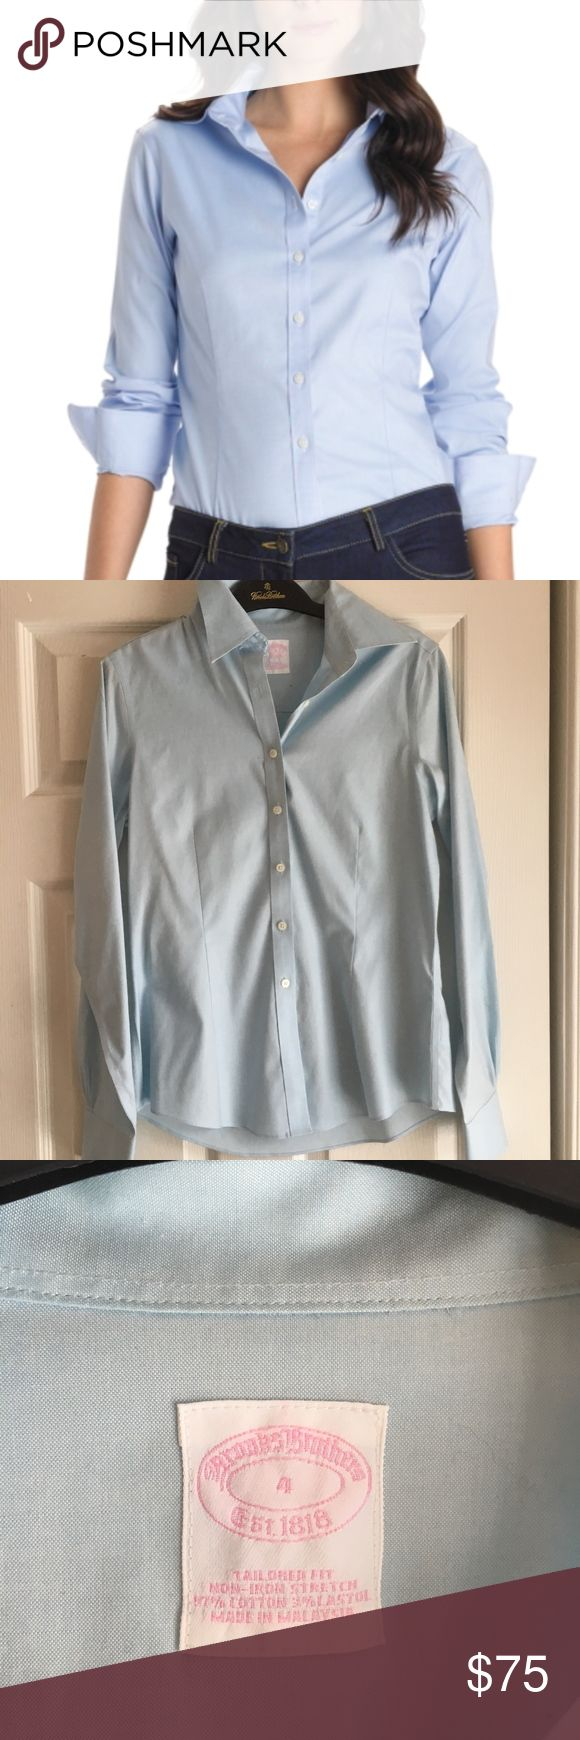 Brooks Brothers Tailored Non Iron Shirt Women's tailored non iron shirt from Brooks Brothers. Women's size 4 (small). 97% cotton with slight stretch. Machine washable. In EXCELLENT never worn condition. Offers always accepted! Brooks Brothers Tops